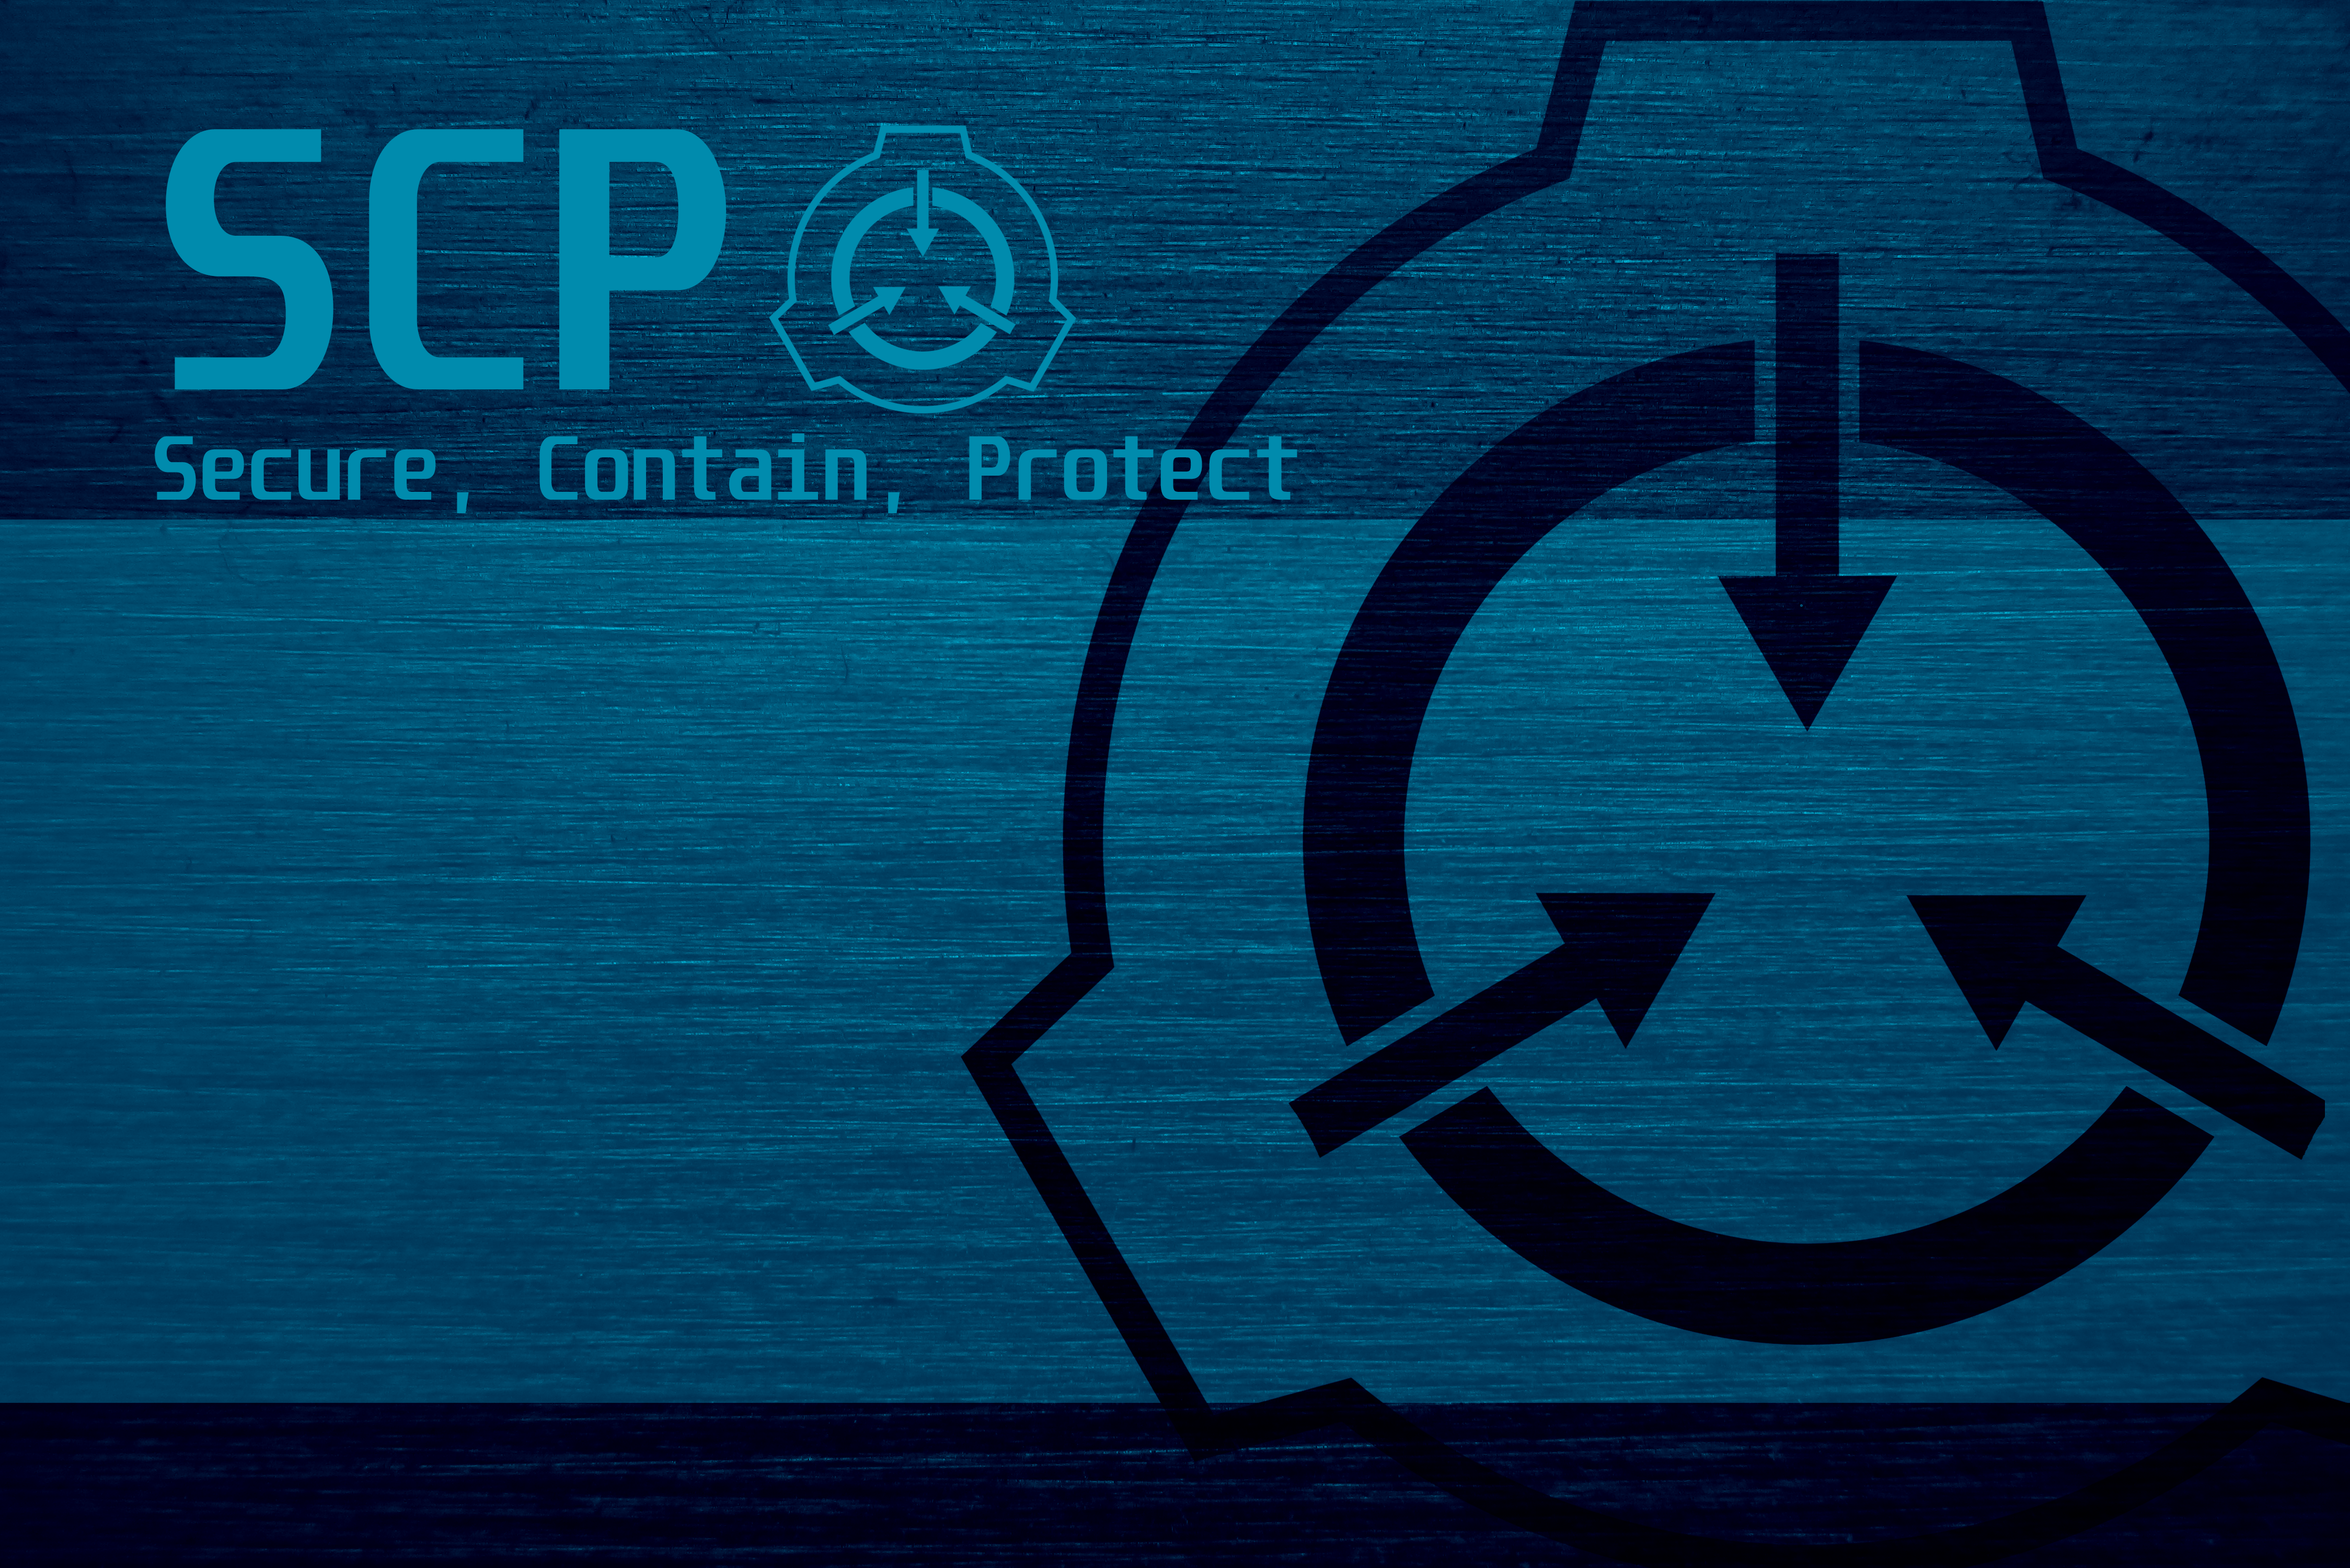 SCP-Ccard-MetalBlue-02.png